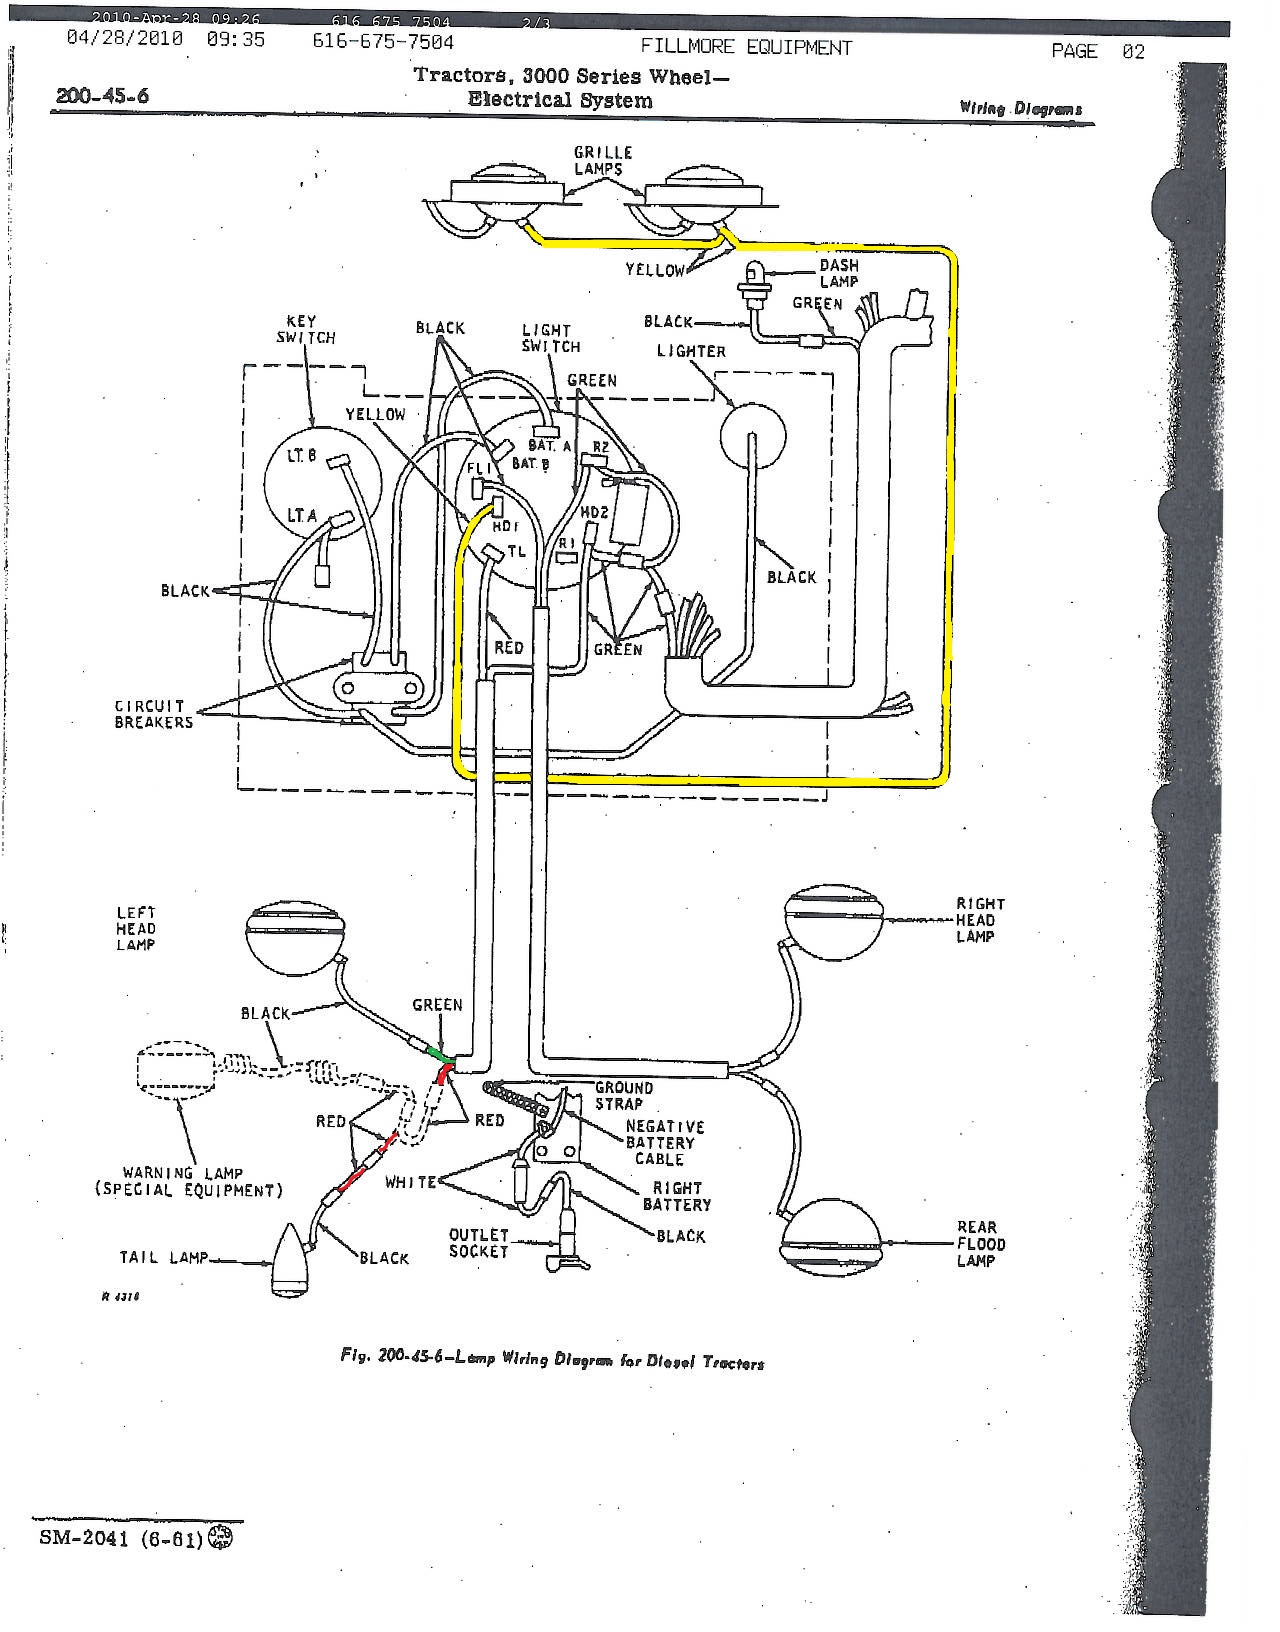 hight resolution of john deere 3010 wiring diagram wiring diagram database john deere 3010 light wiring diagram jd 3010 wiring diagram